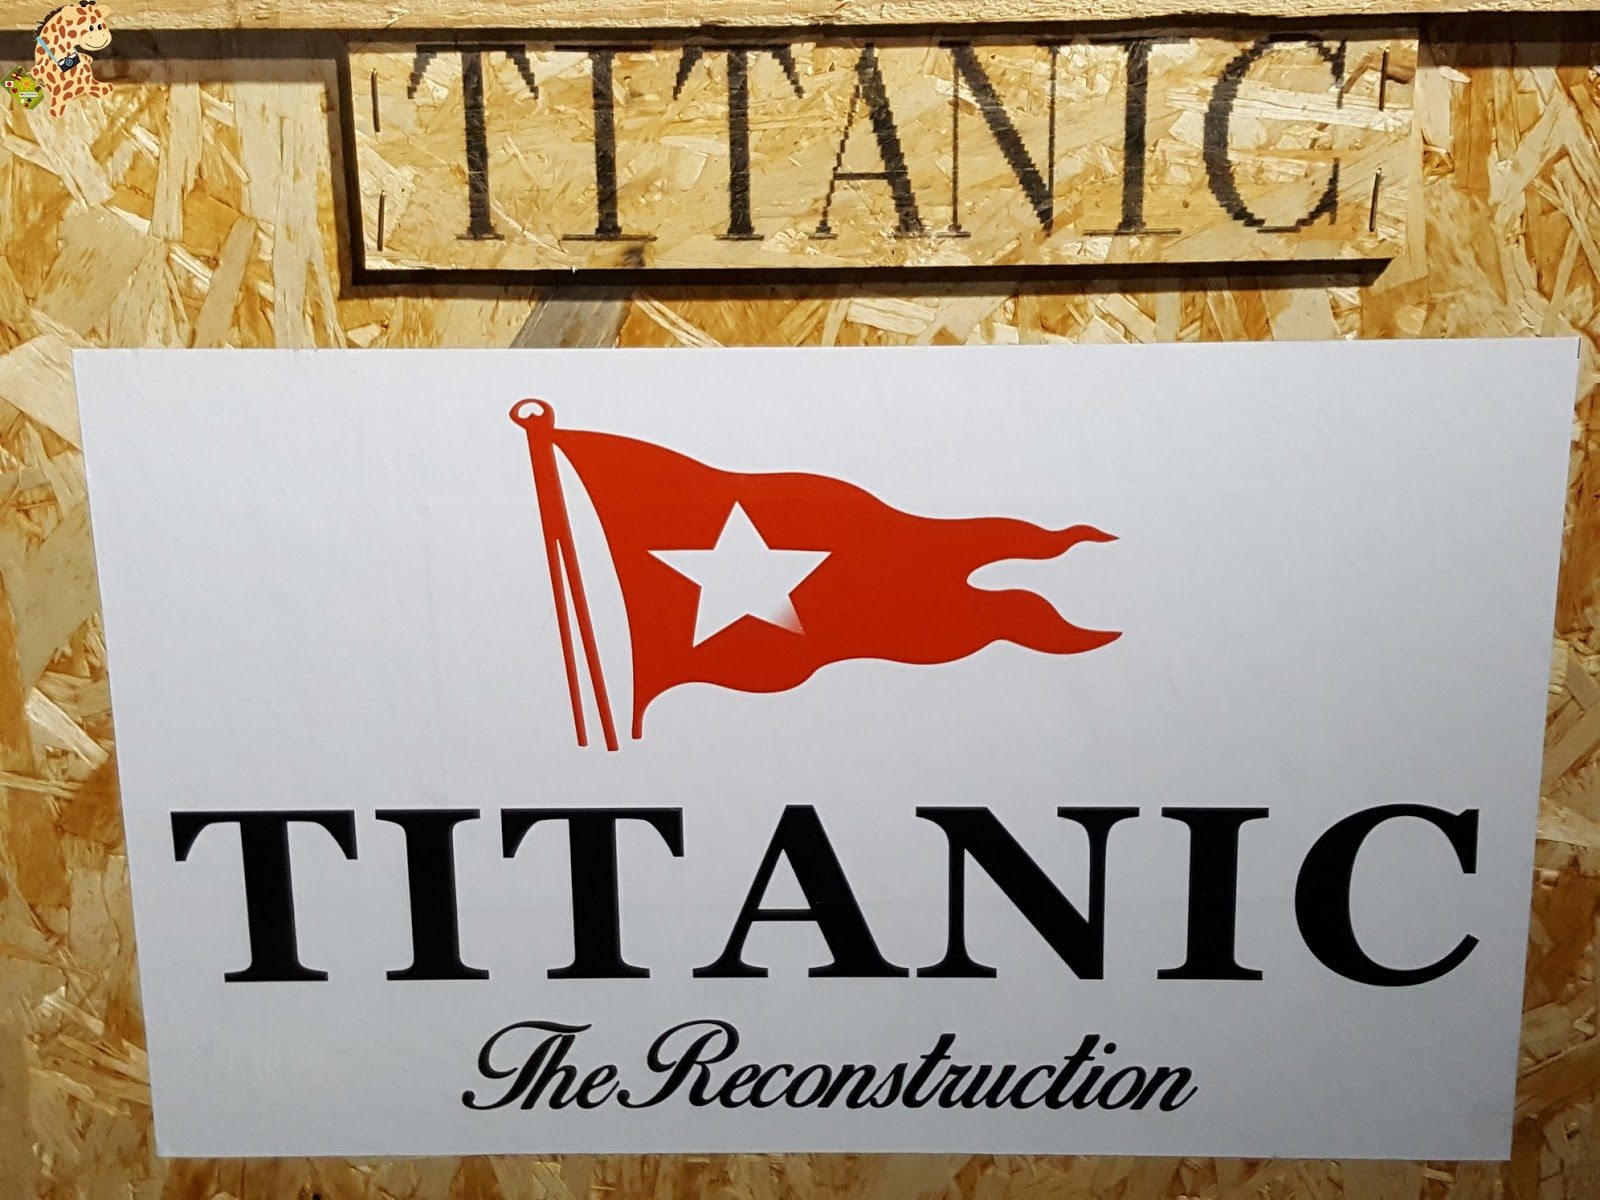 Titanic: The reconstruction (A Coruña)